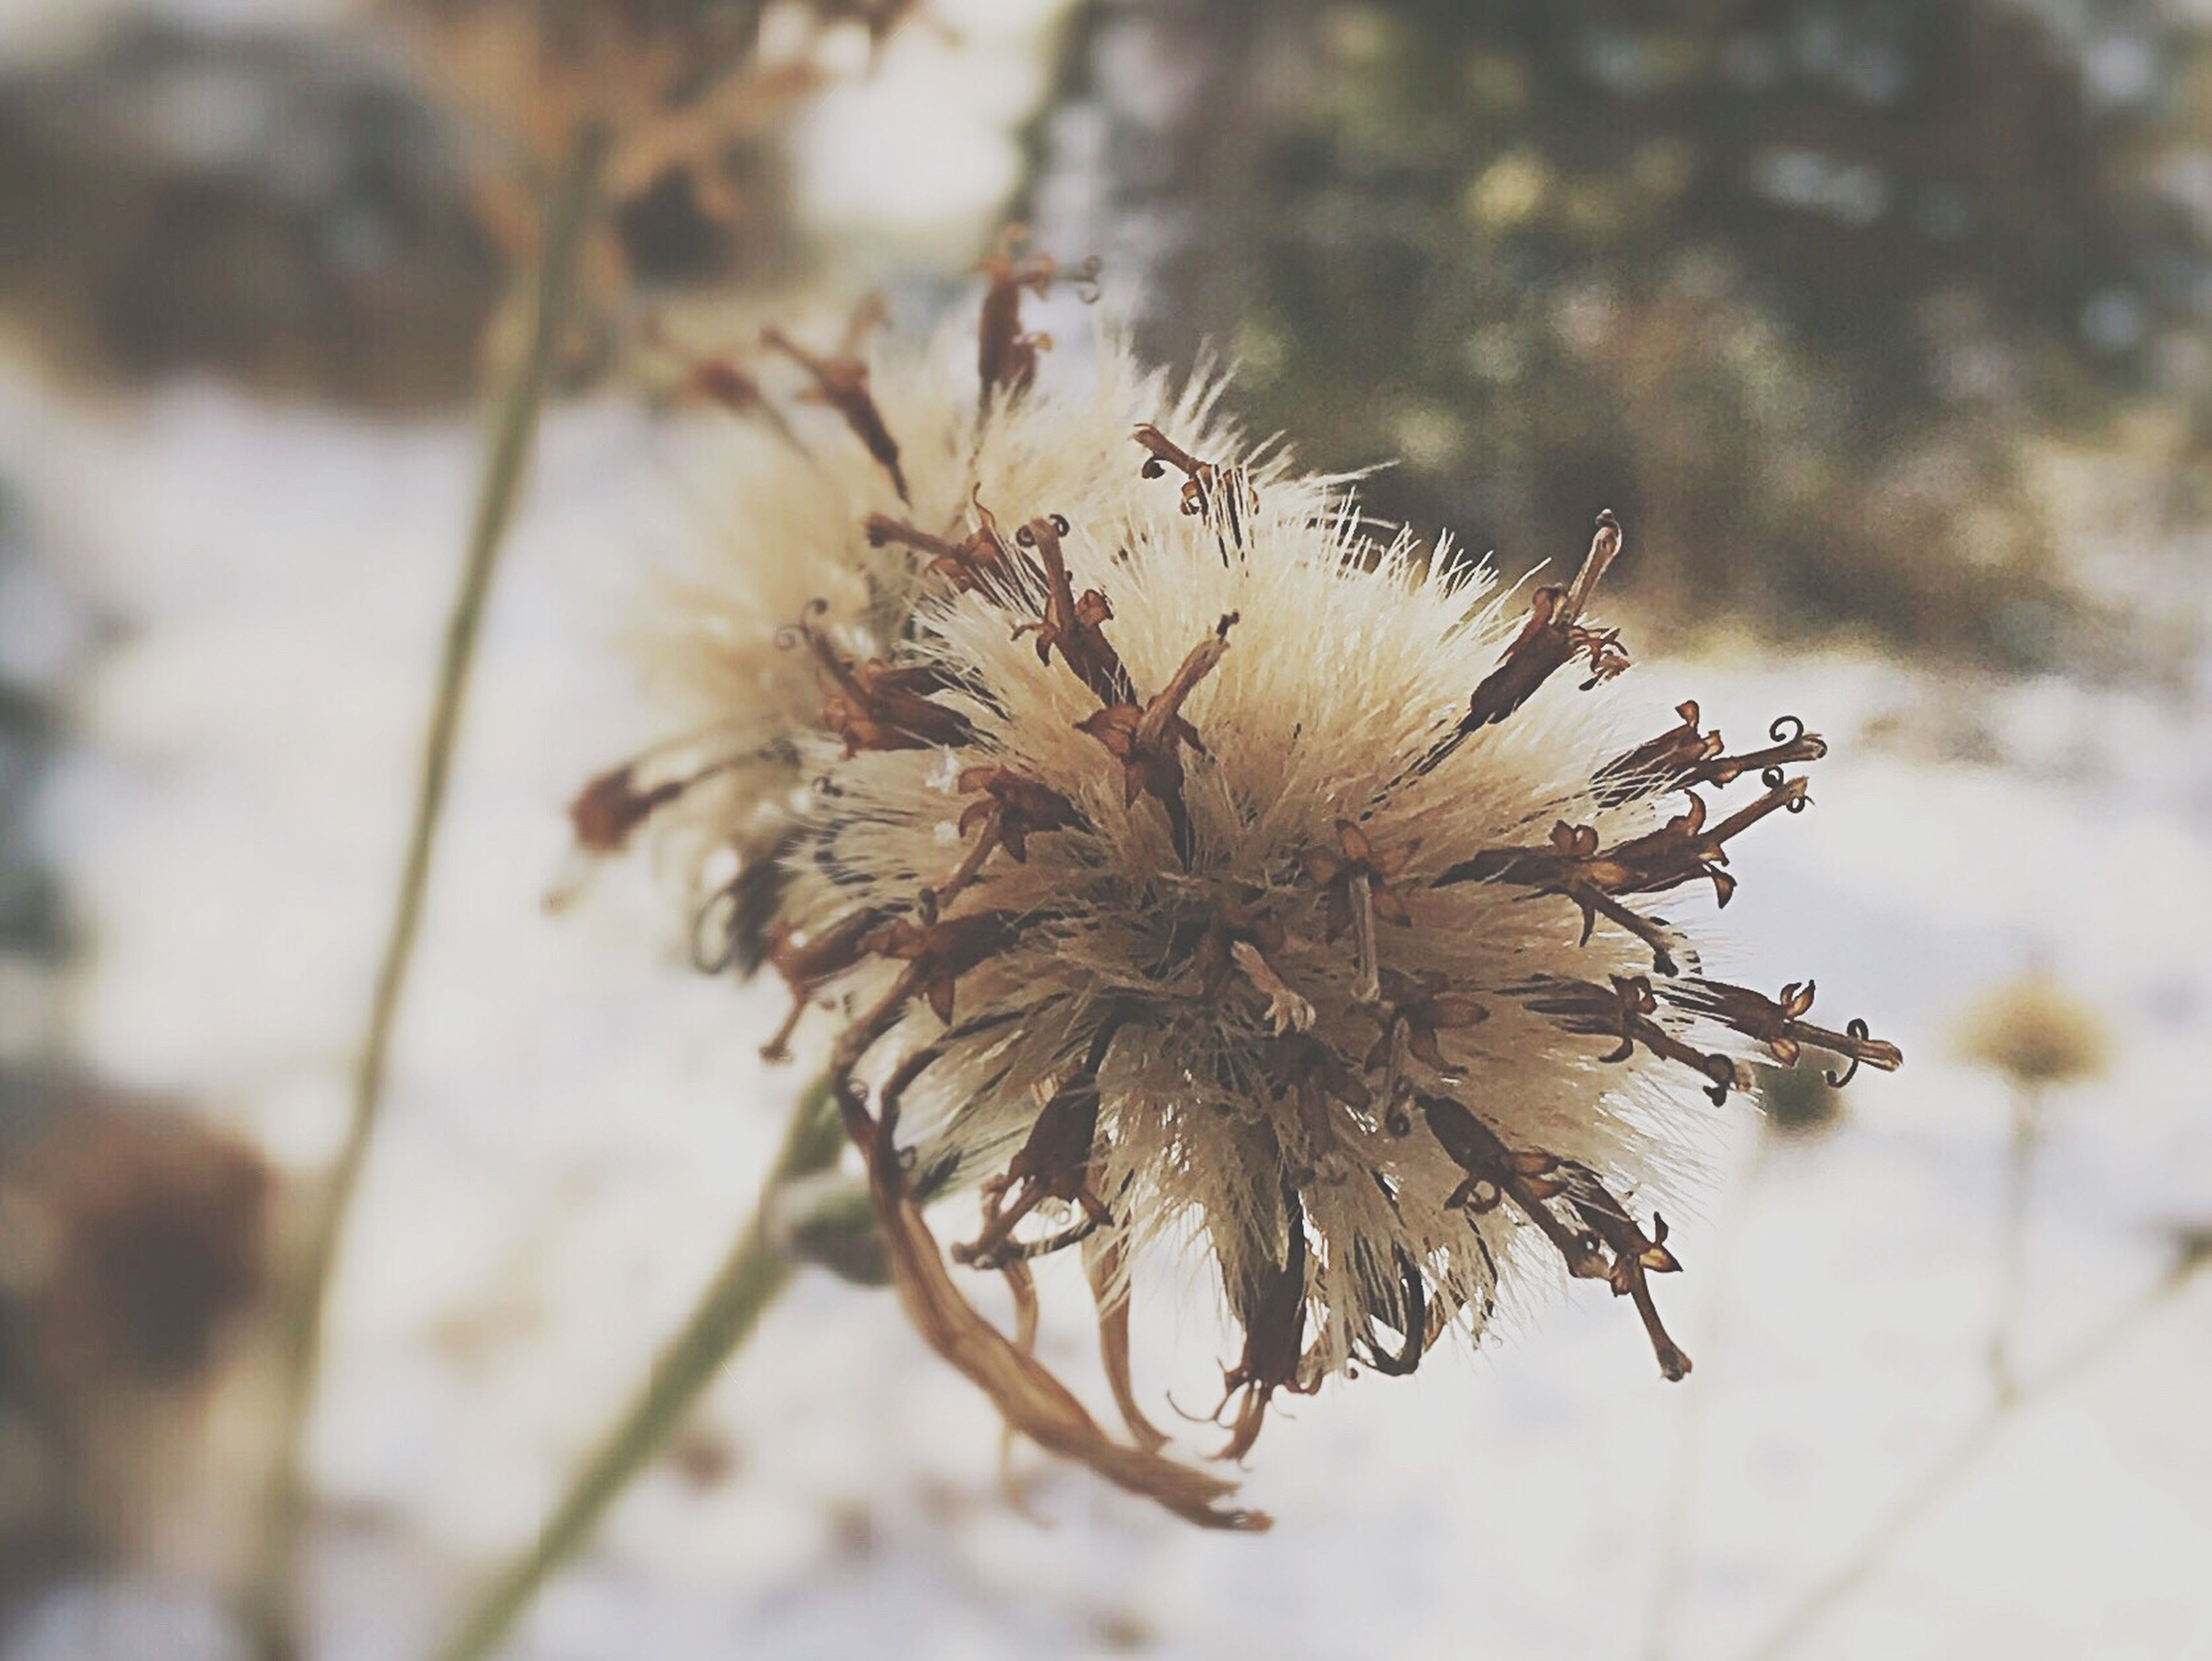 nature, growth, close-up, flower, outdoors, plant, fragility, no people, beauty in nature, branch, day, tranquility, flower head